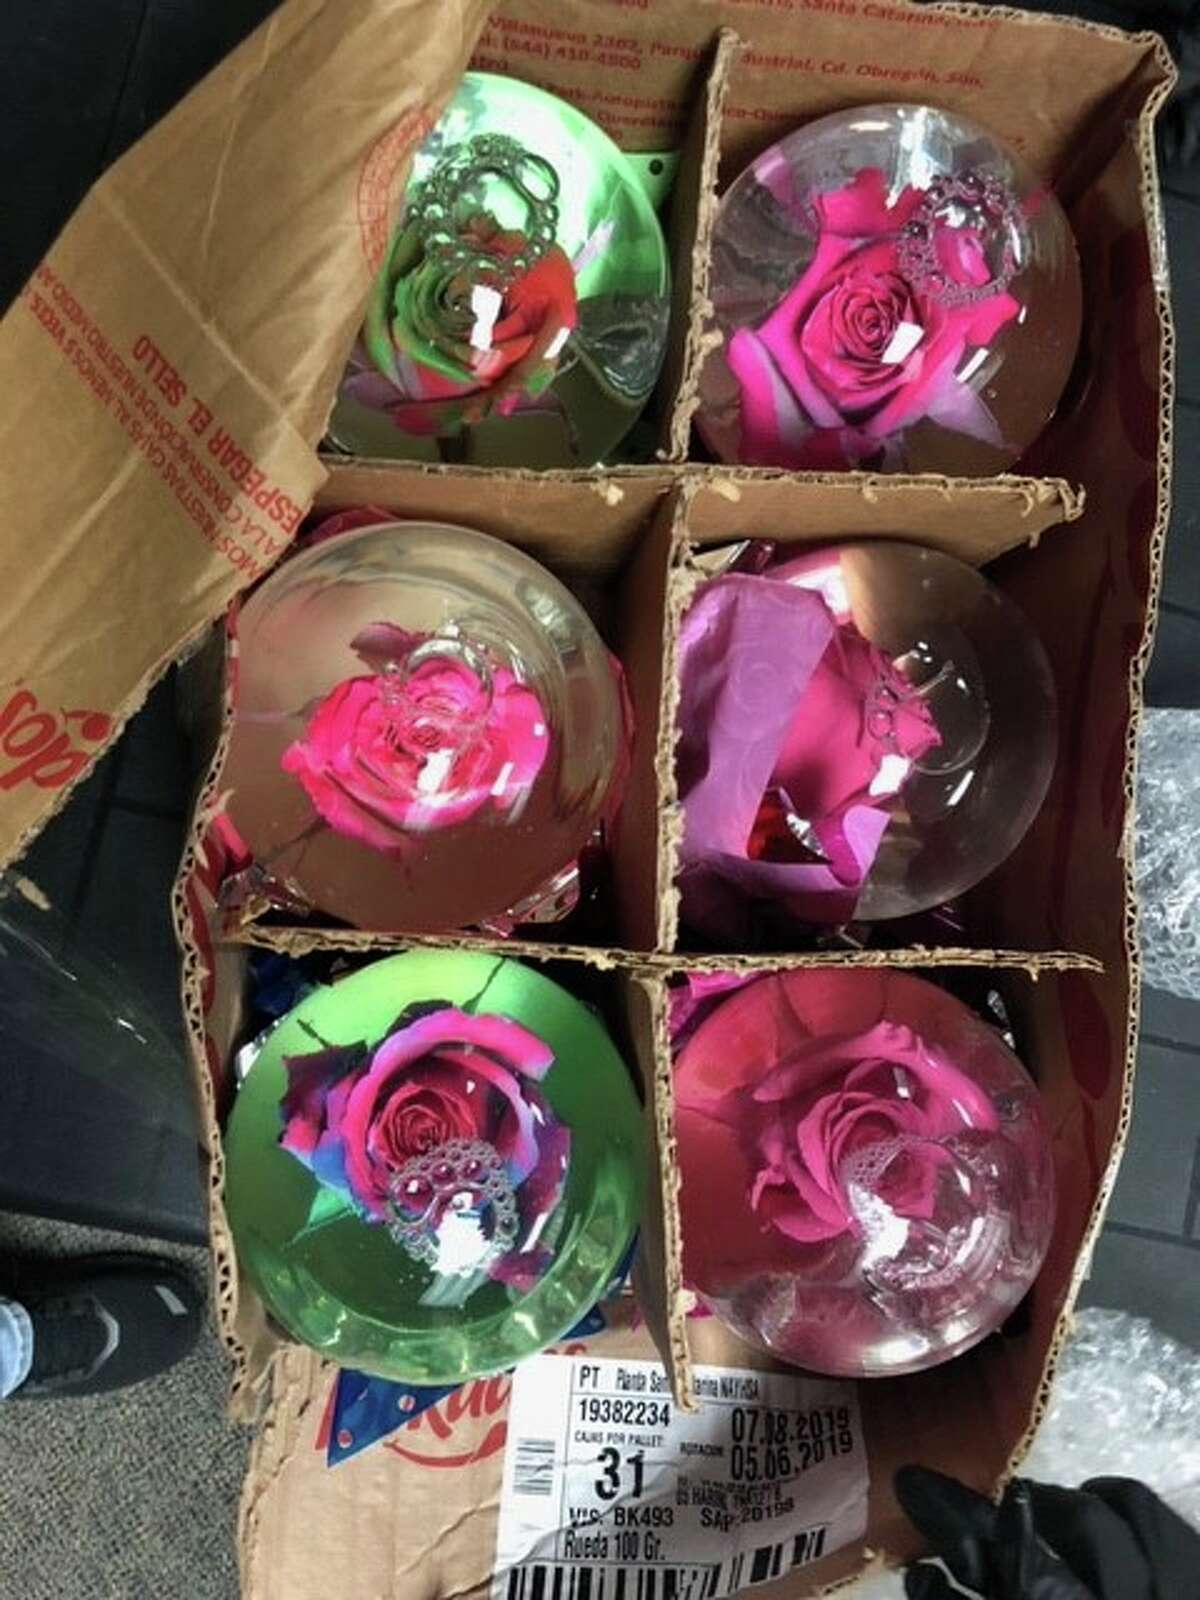 The Harris County Pct. 5 Constable's Office uncovered globes filled with liquid meth as part of an ongoing investigation with the Drug Enforcement Administration, the office announced Saturday on Facebook.